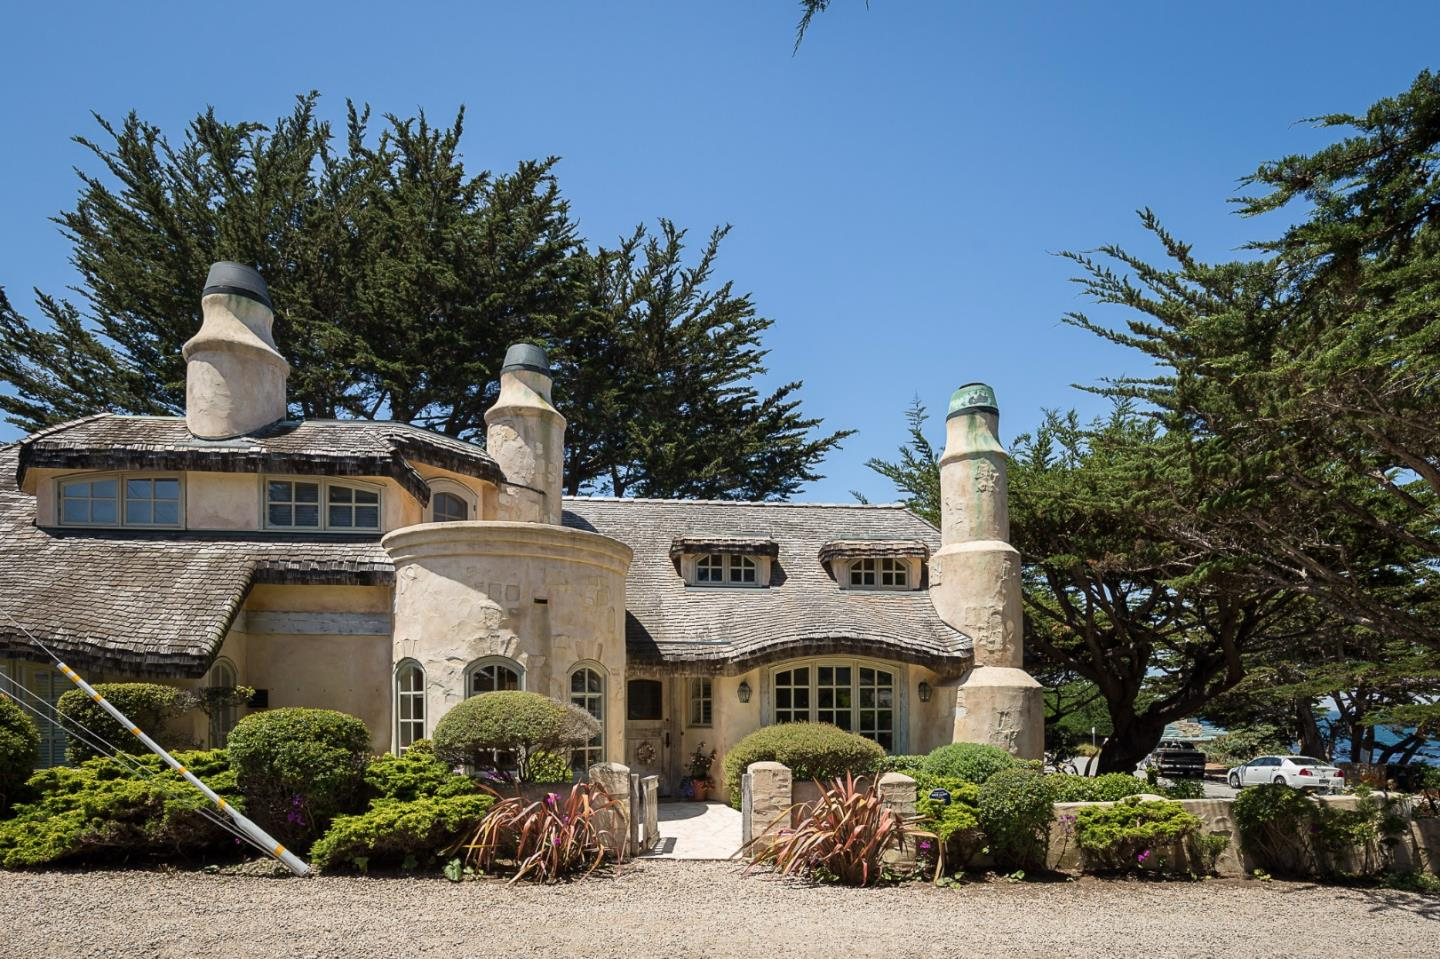 Buy this storybook cottage in Carmel CA for sale - a truly dream come true home